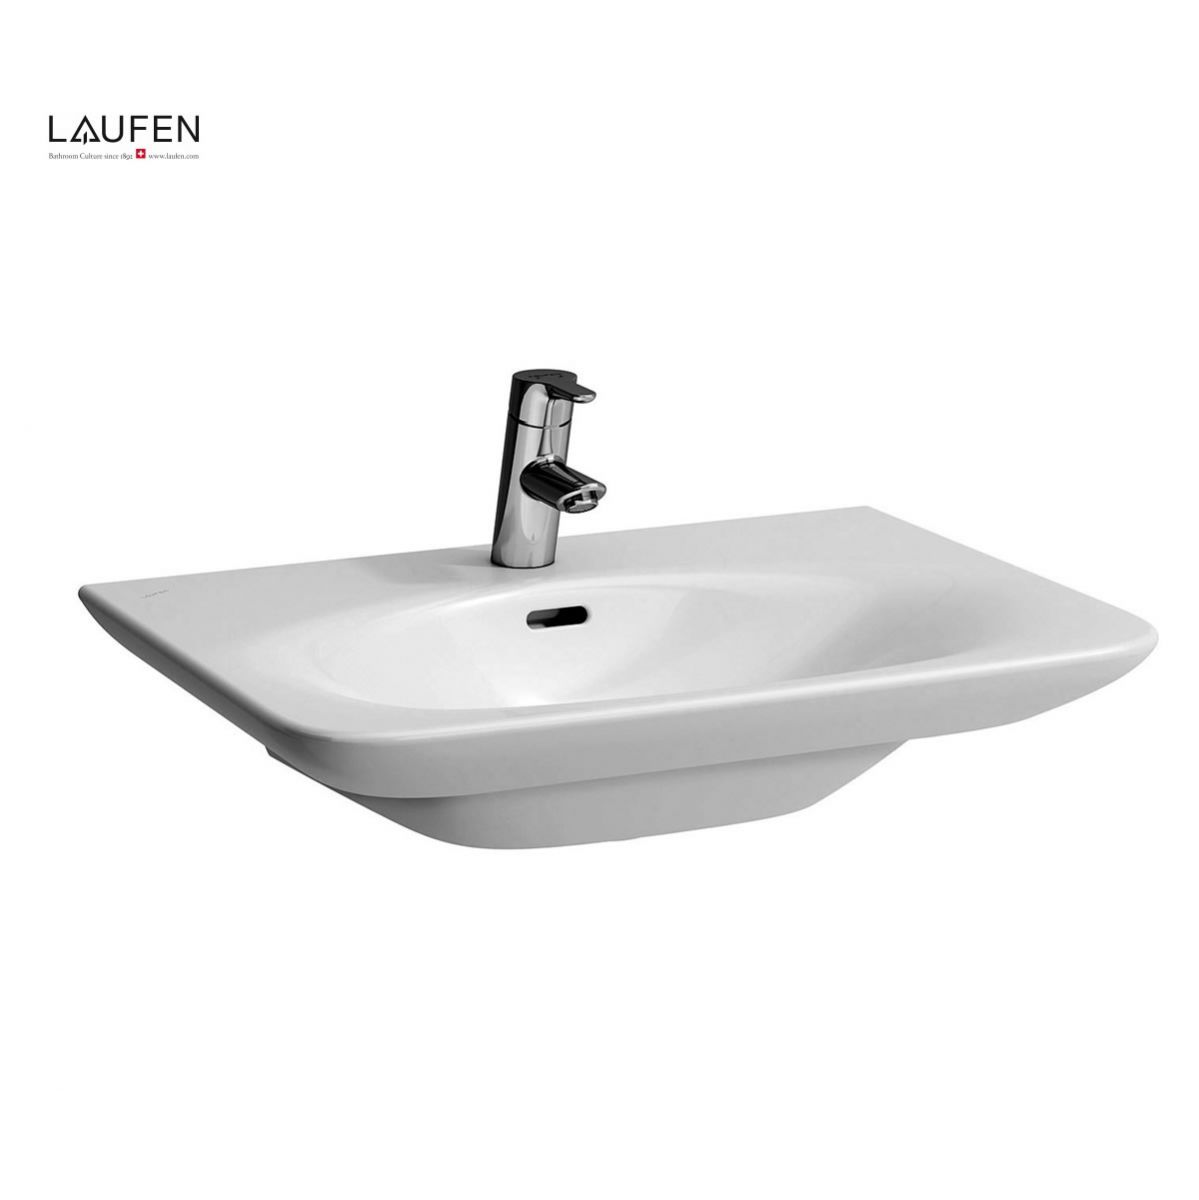 LAUFEN Bathrooms. 60, likes · talking about this · 28 were here. Celebrating years of Bathroom Culture. Founded in in Switzerland, LAUFEN.